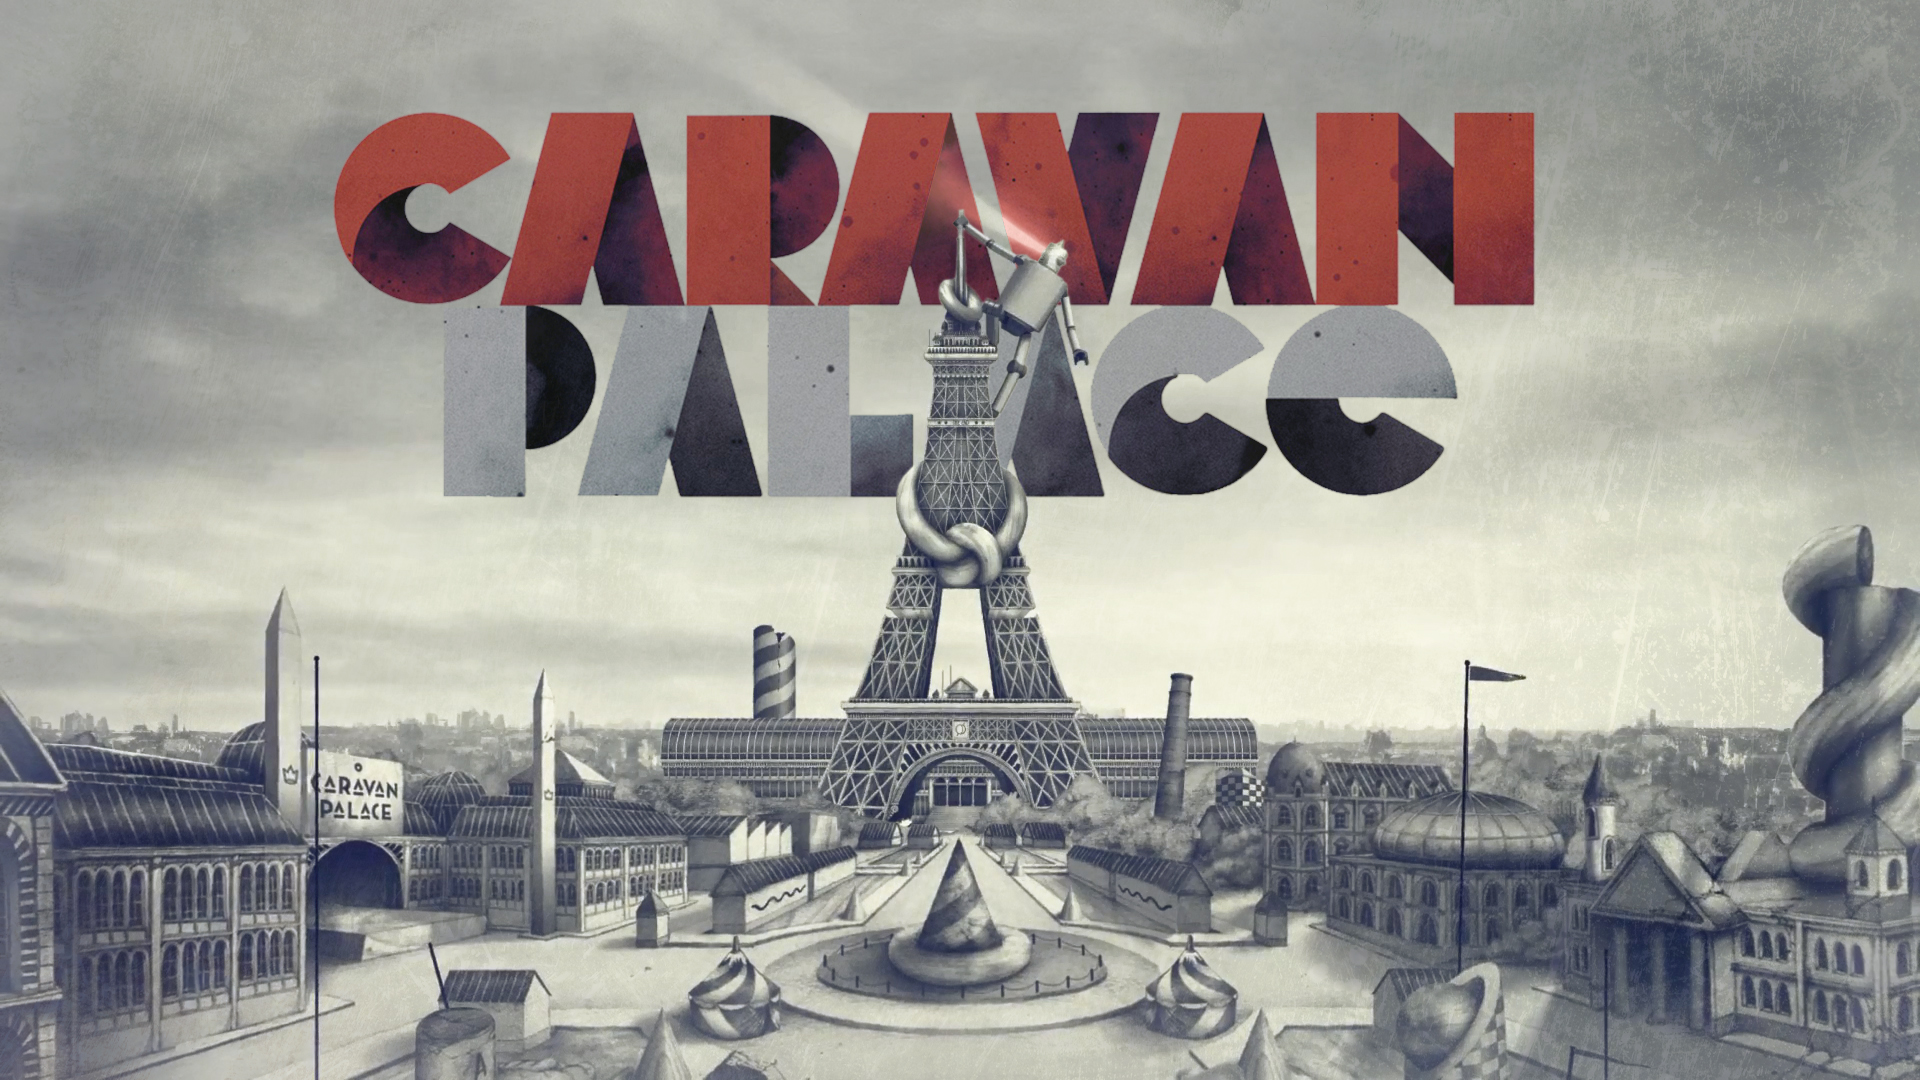 Caravan Palace by NathanTheMighty on DeviantArt